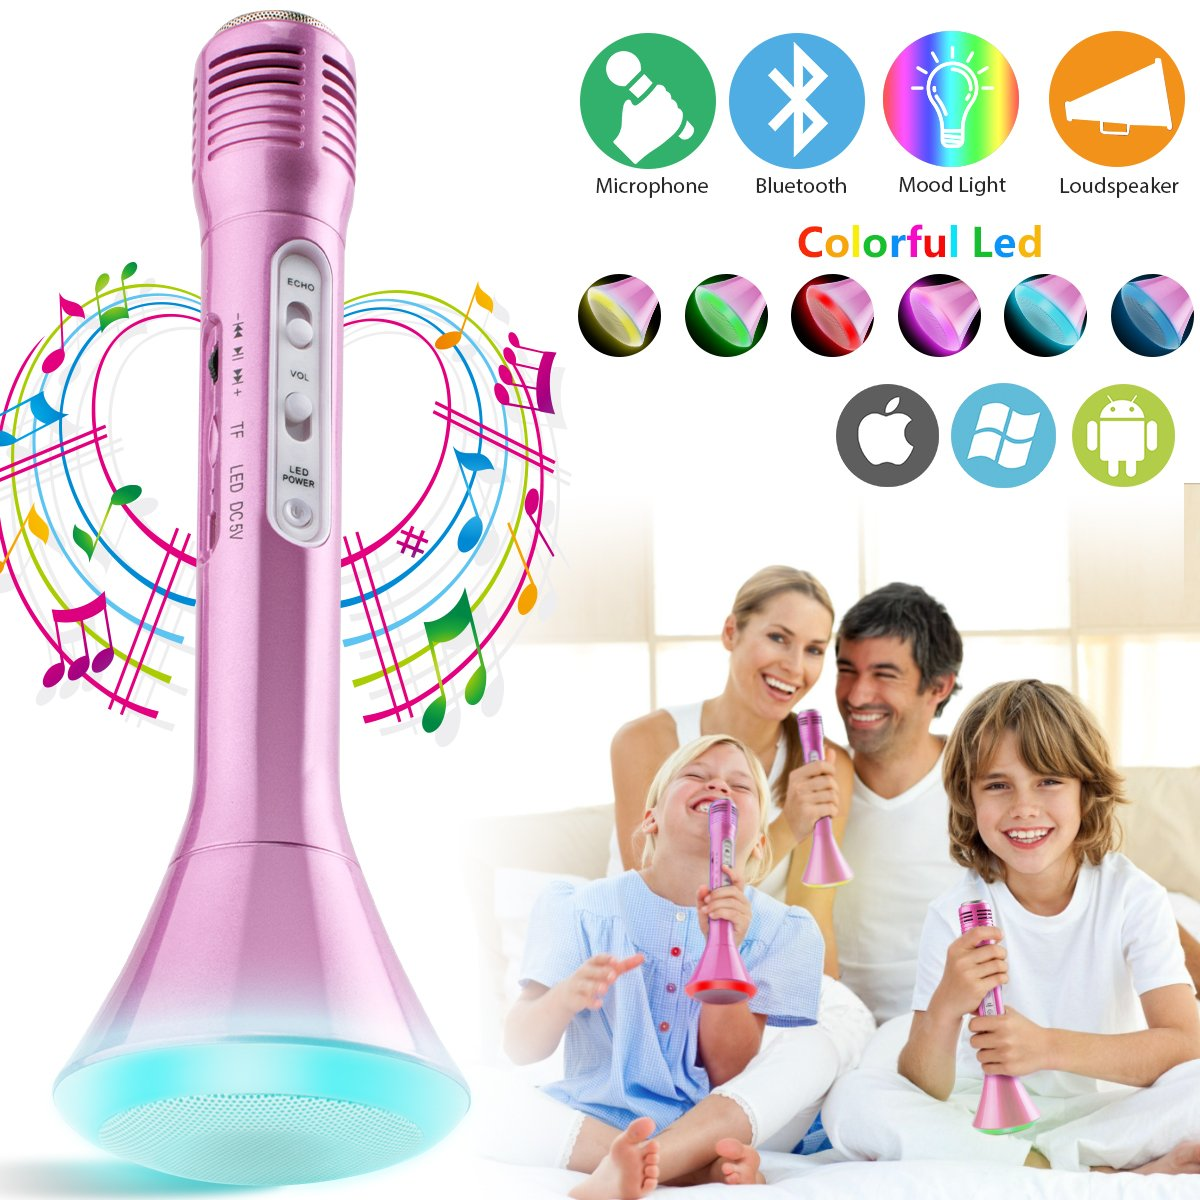 Wireless Kids Karaoke Microphone with Speaker, Portable Bluetooth Microphone Child Karaoke Mic Machine for Kids Adult Singing Party Music Playing, Support iPhone Android Smartphone PC iPad (Pink)